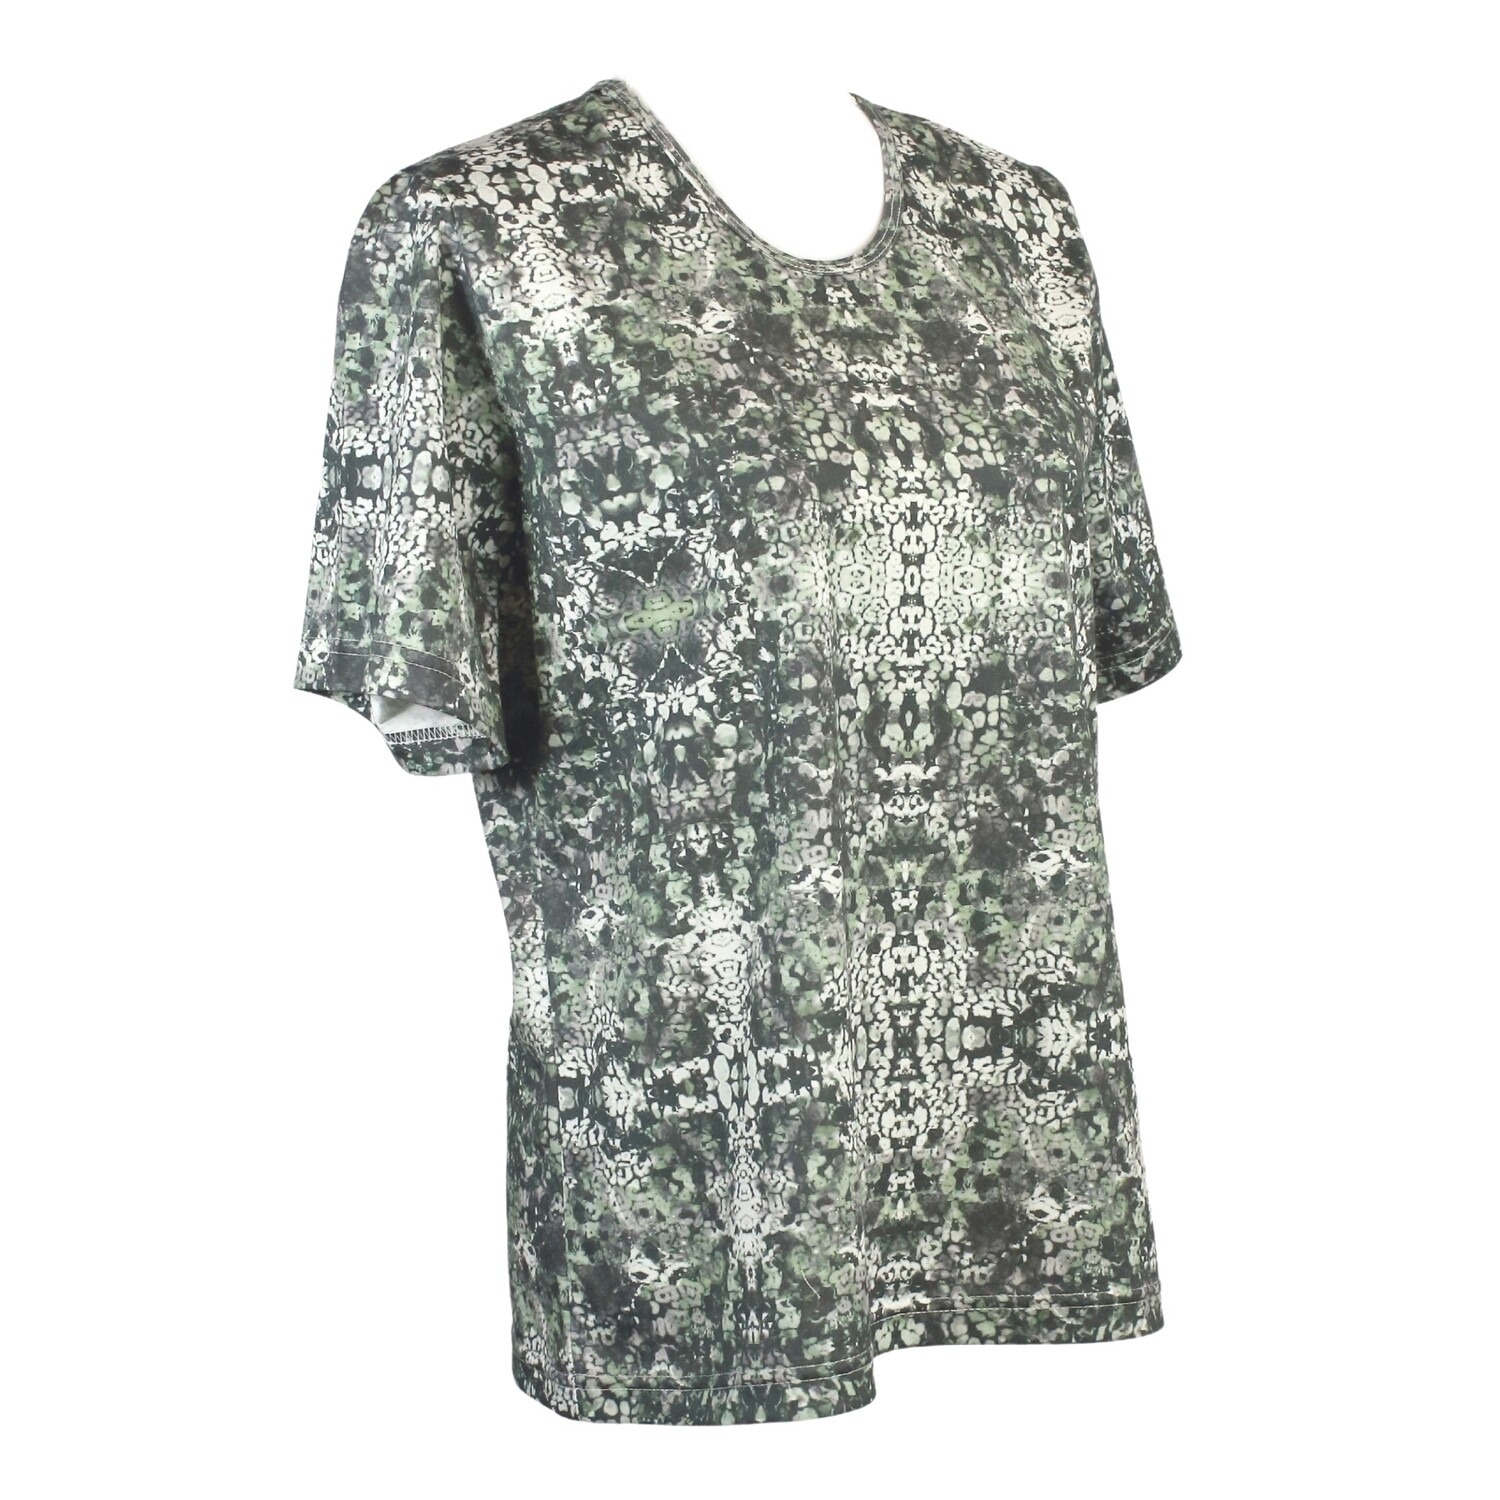 Pure Cotton Short Sleeve Print Tee